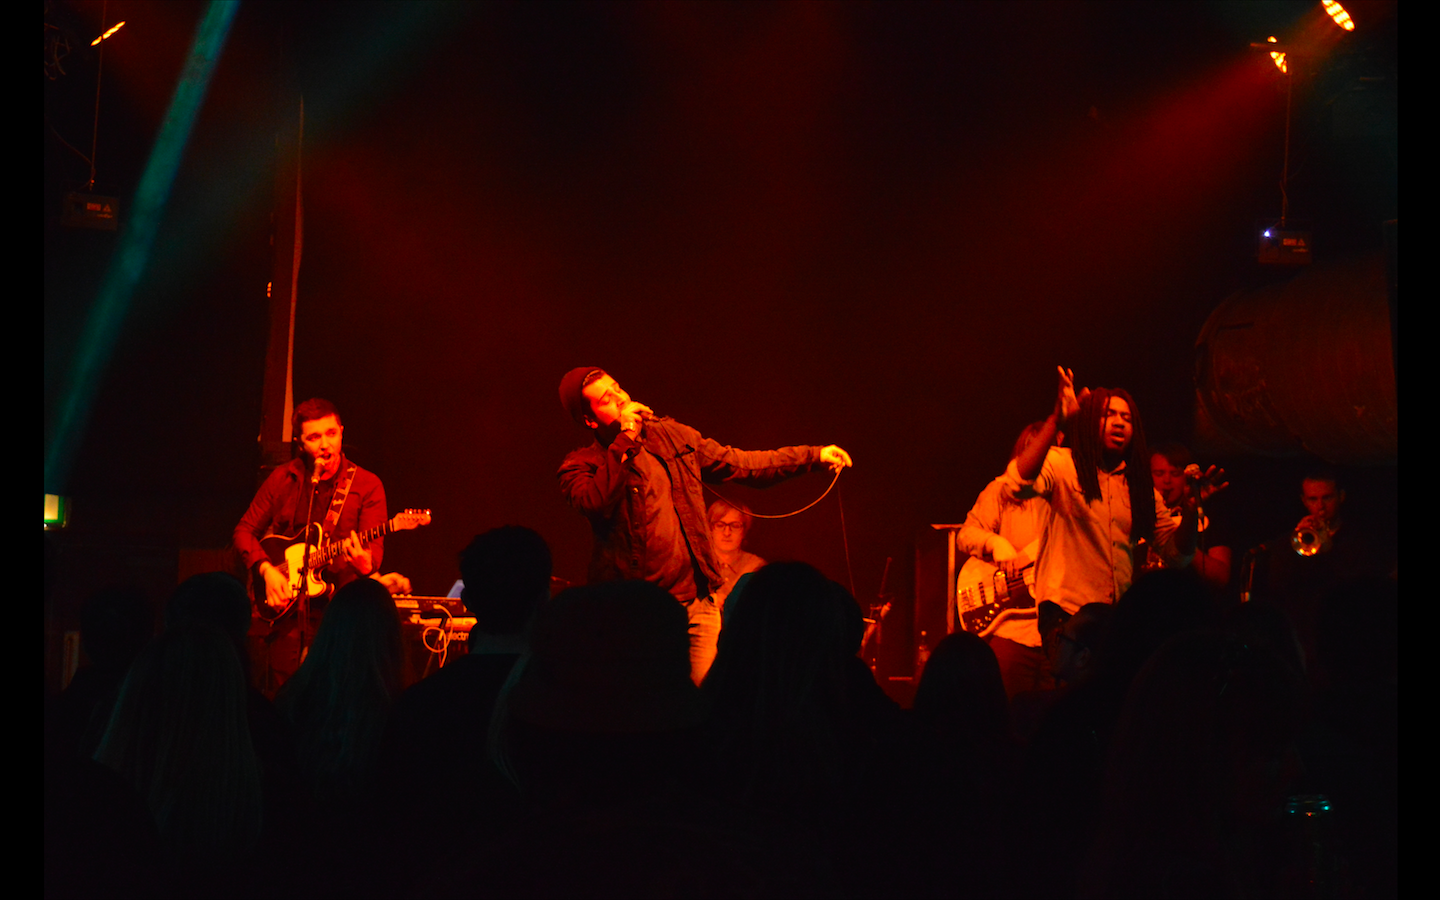 A band on stage at a concert